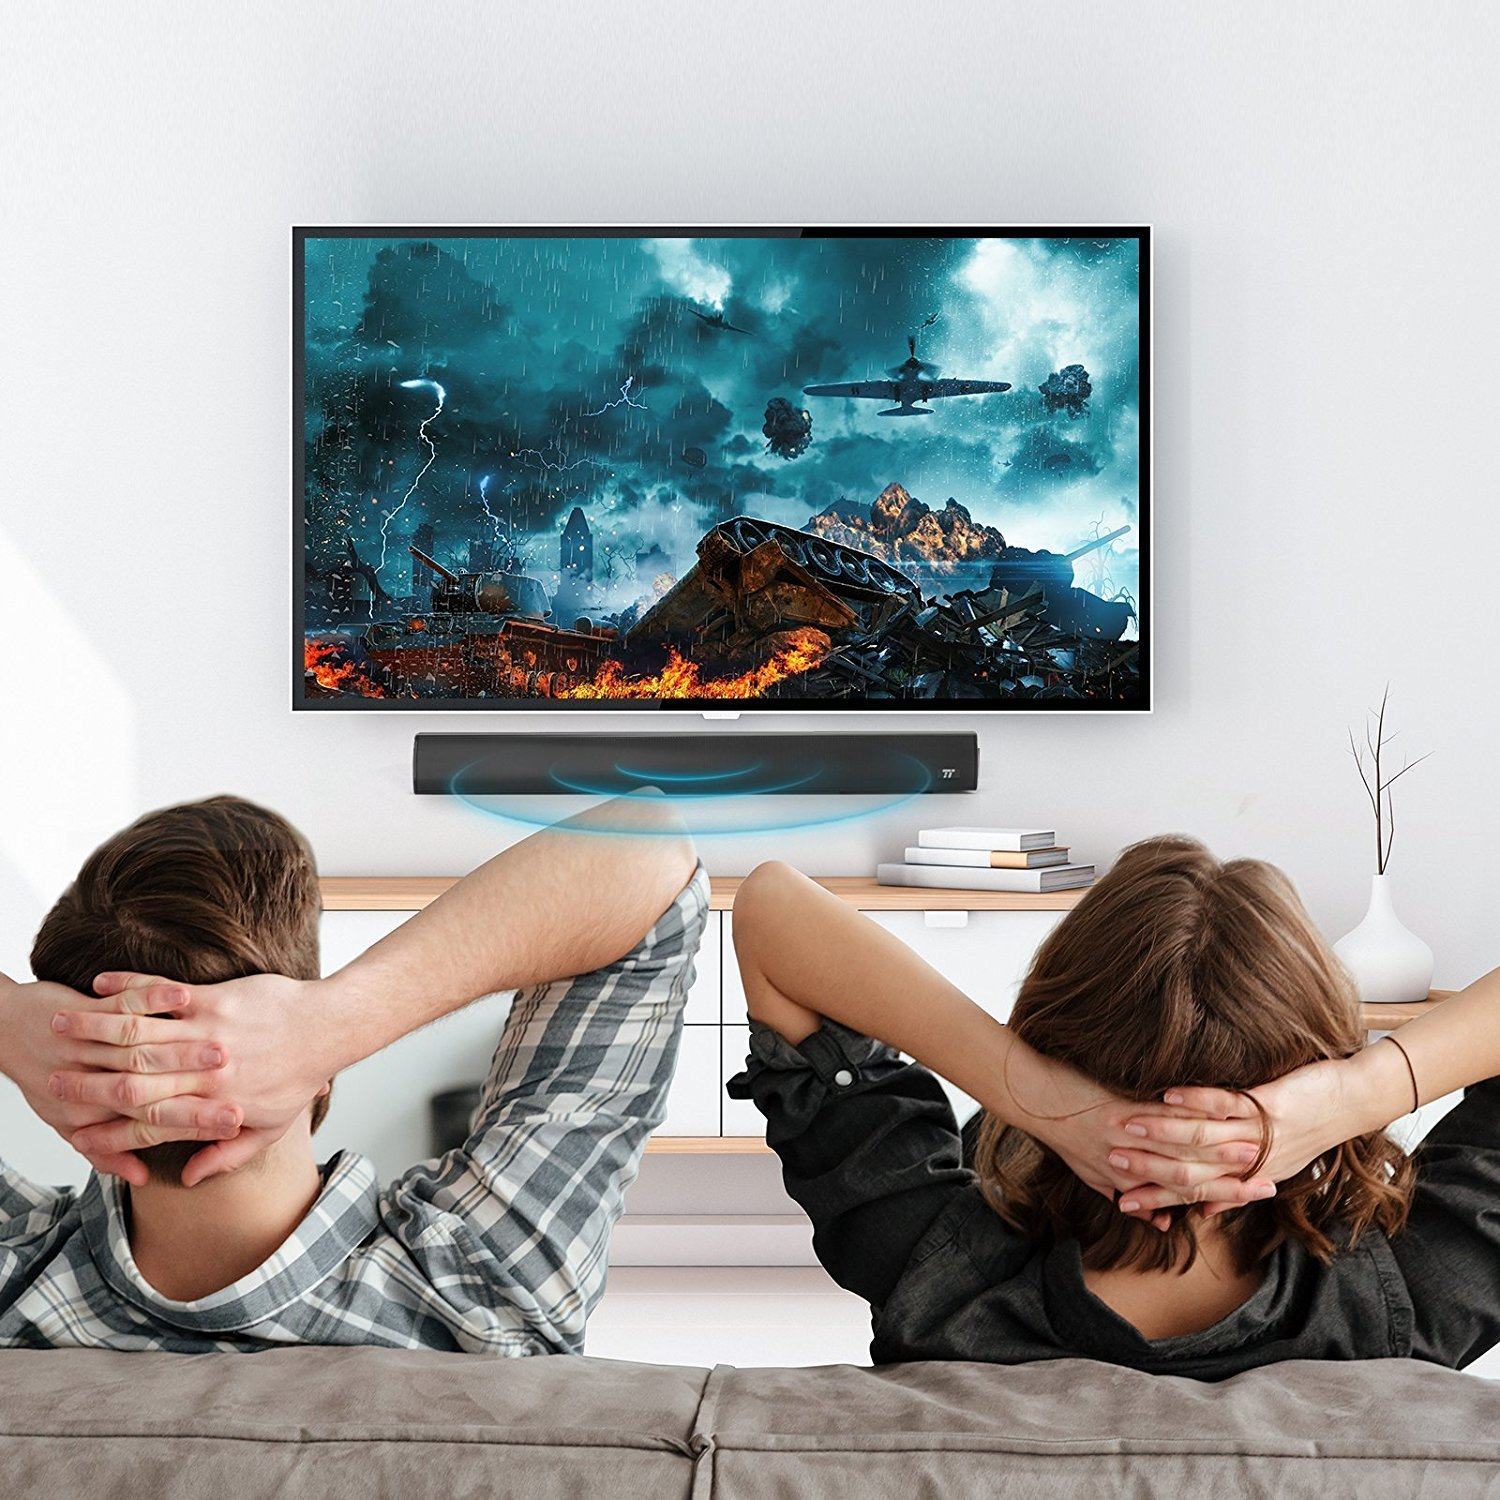 The Company with the $90 Sound Bar Everyone Loves Has a New Version that's Only $80